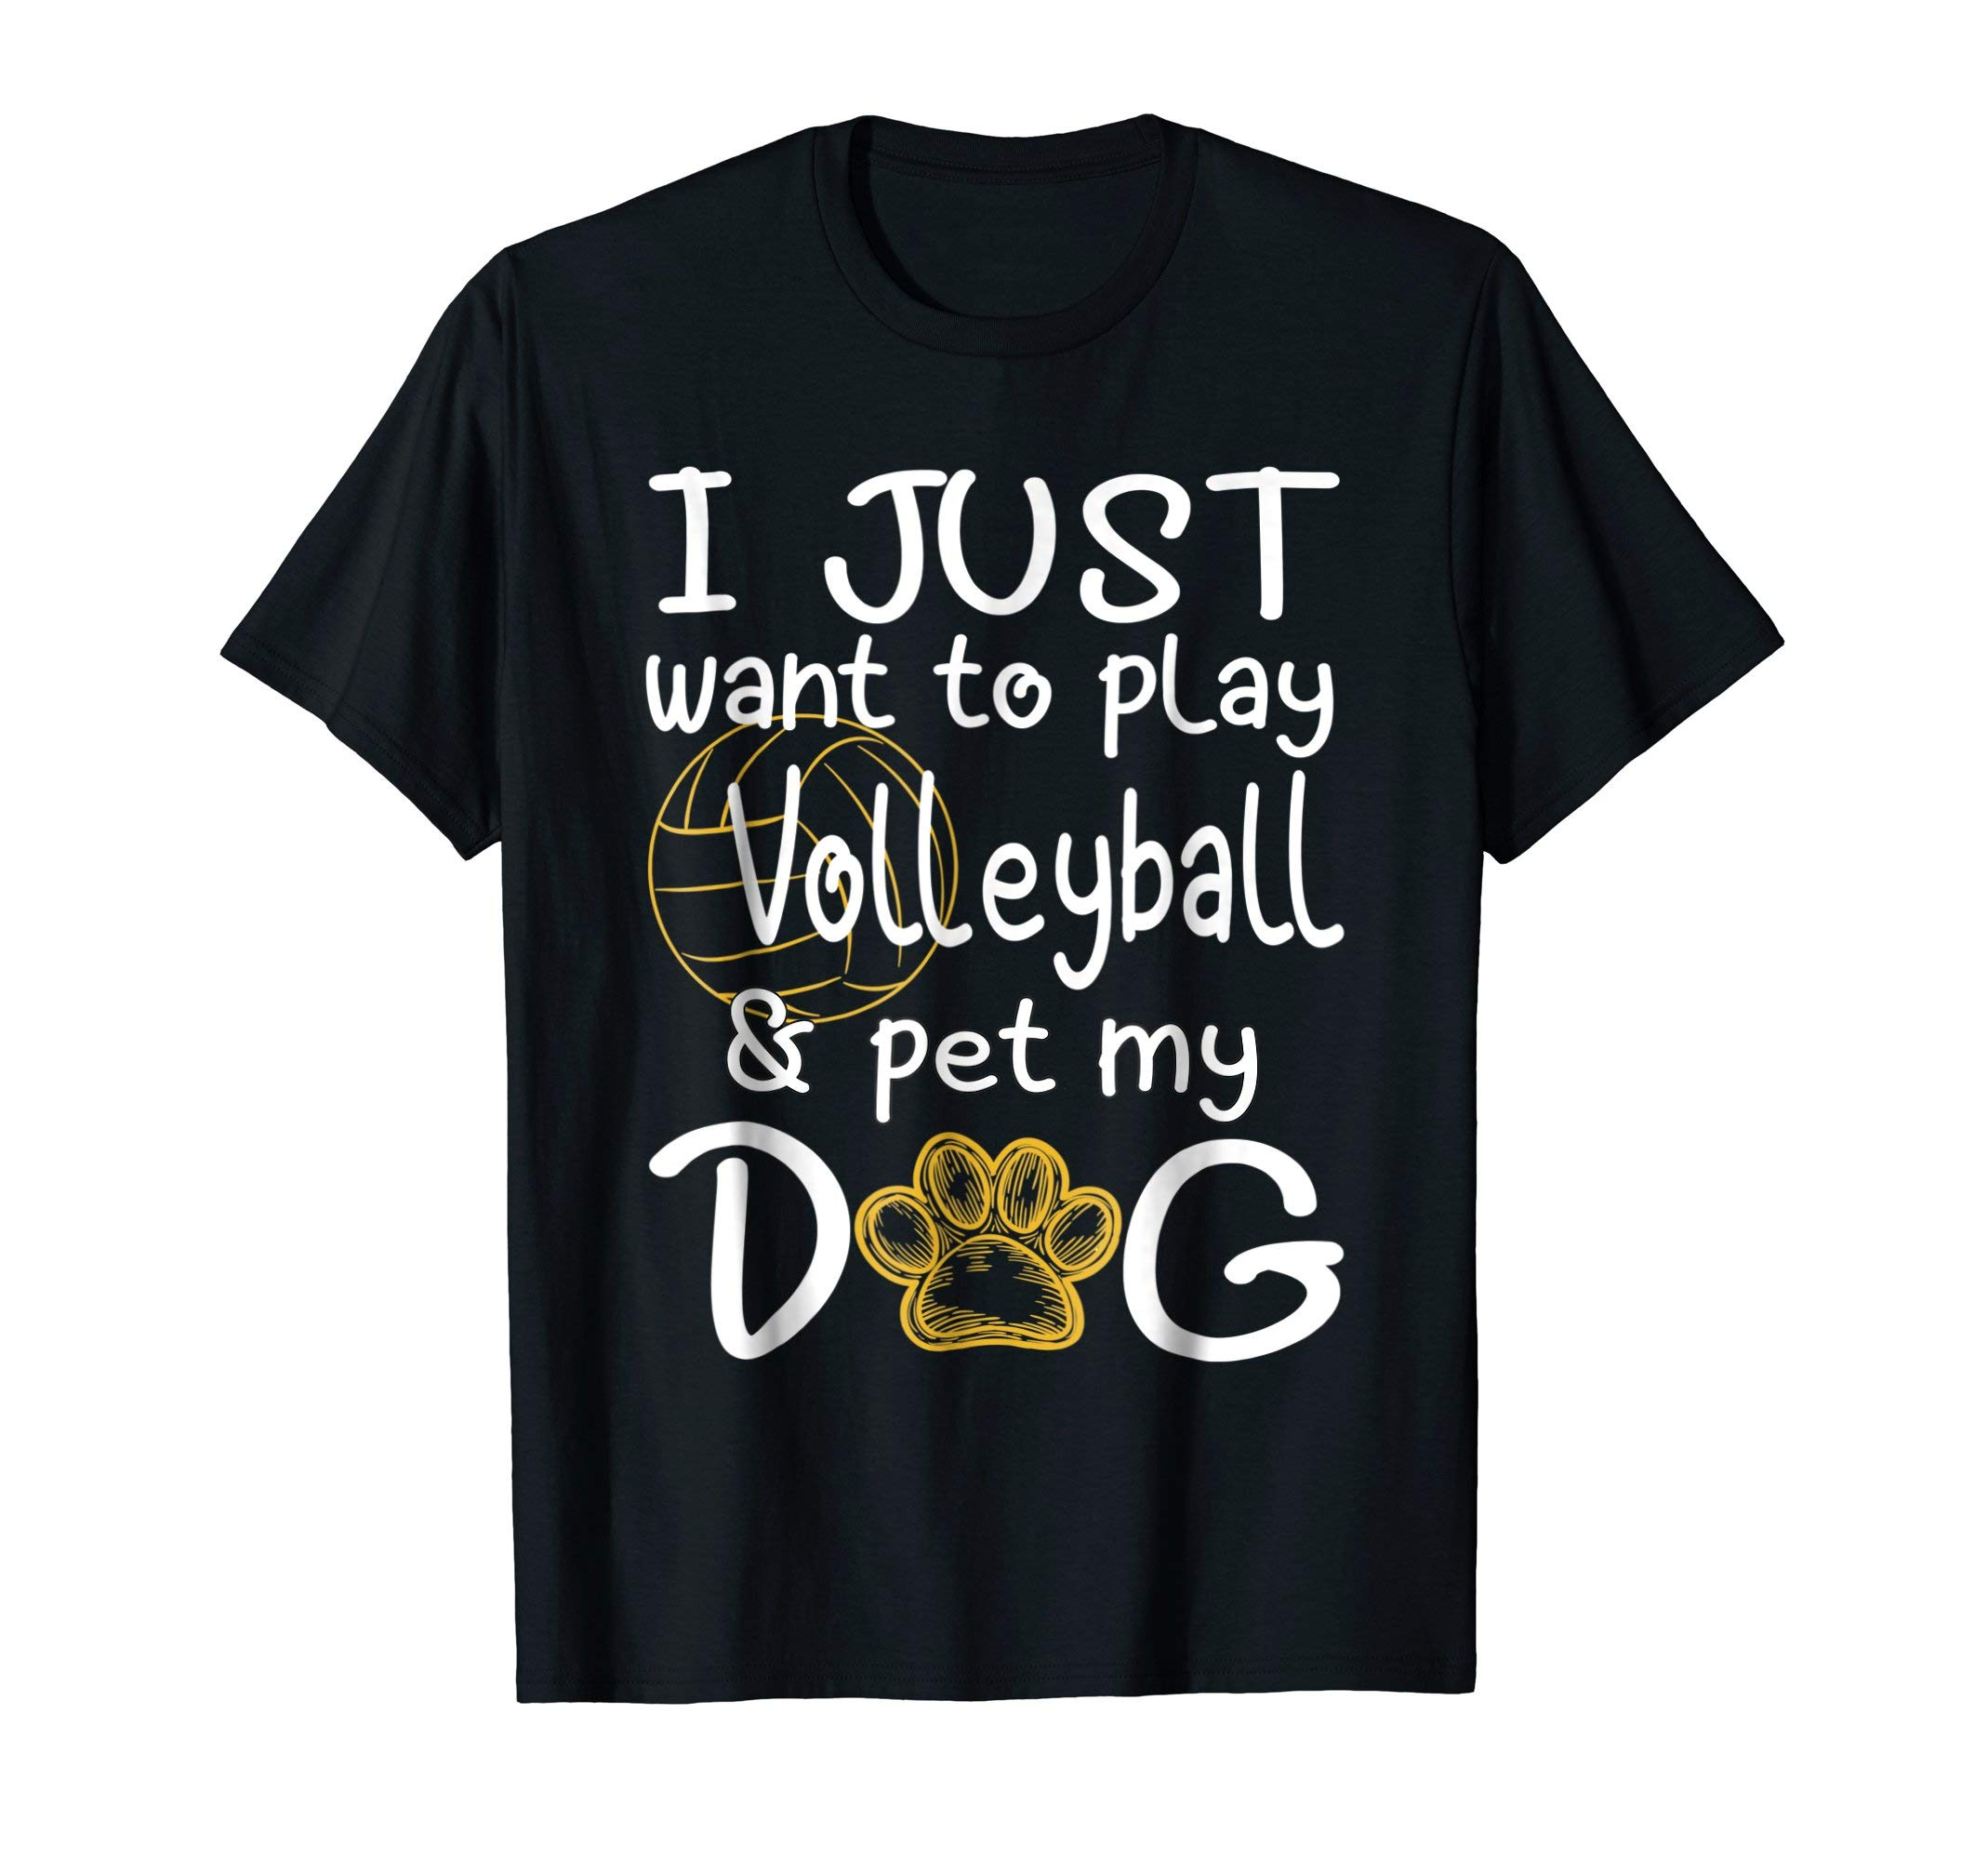 I Just Want To Play Volleyball And Pet My Dog tshirt by recal